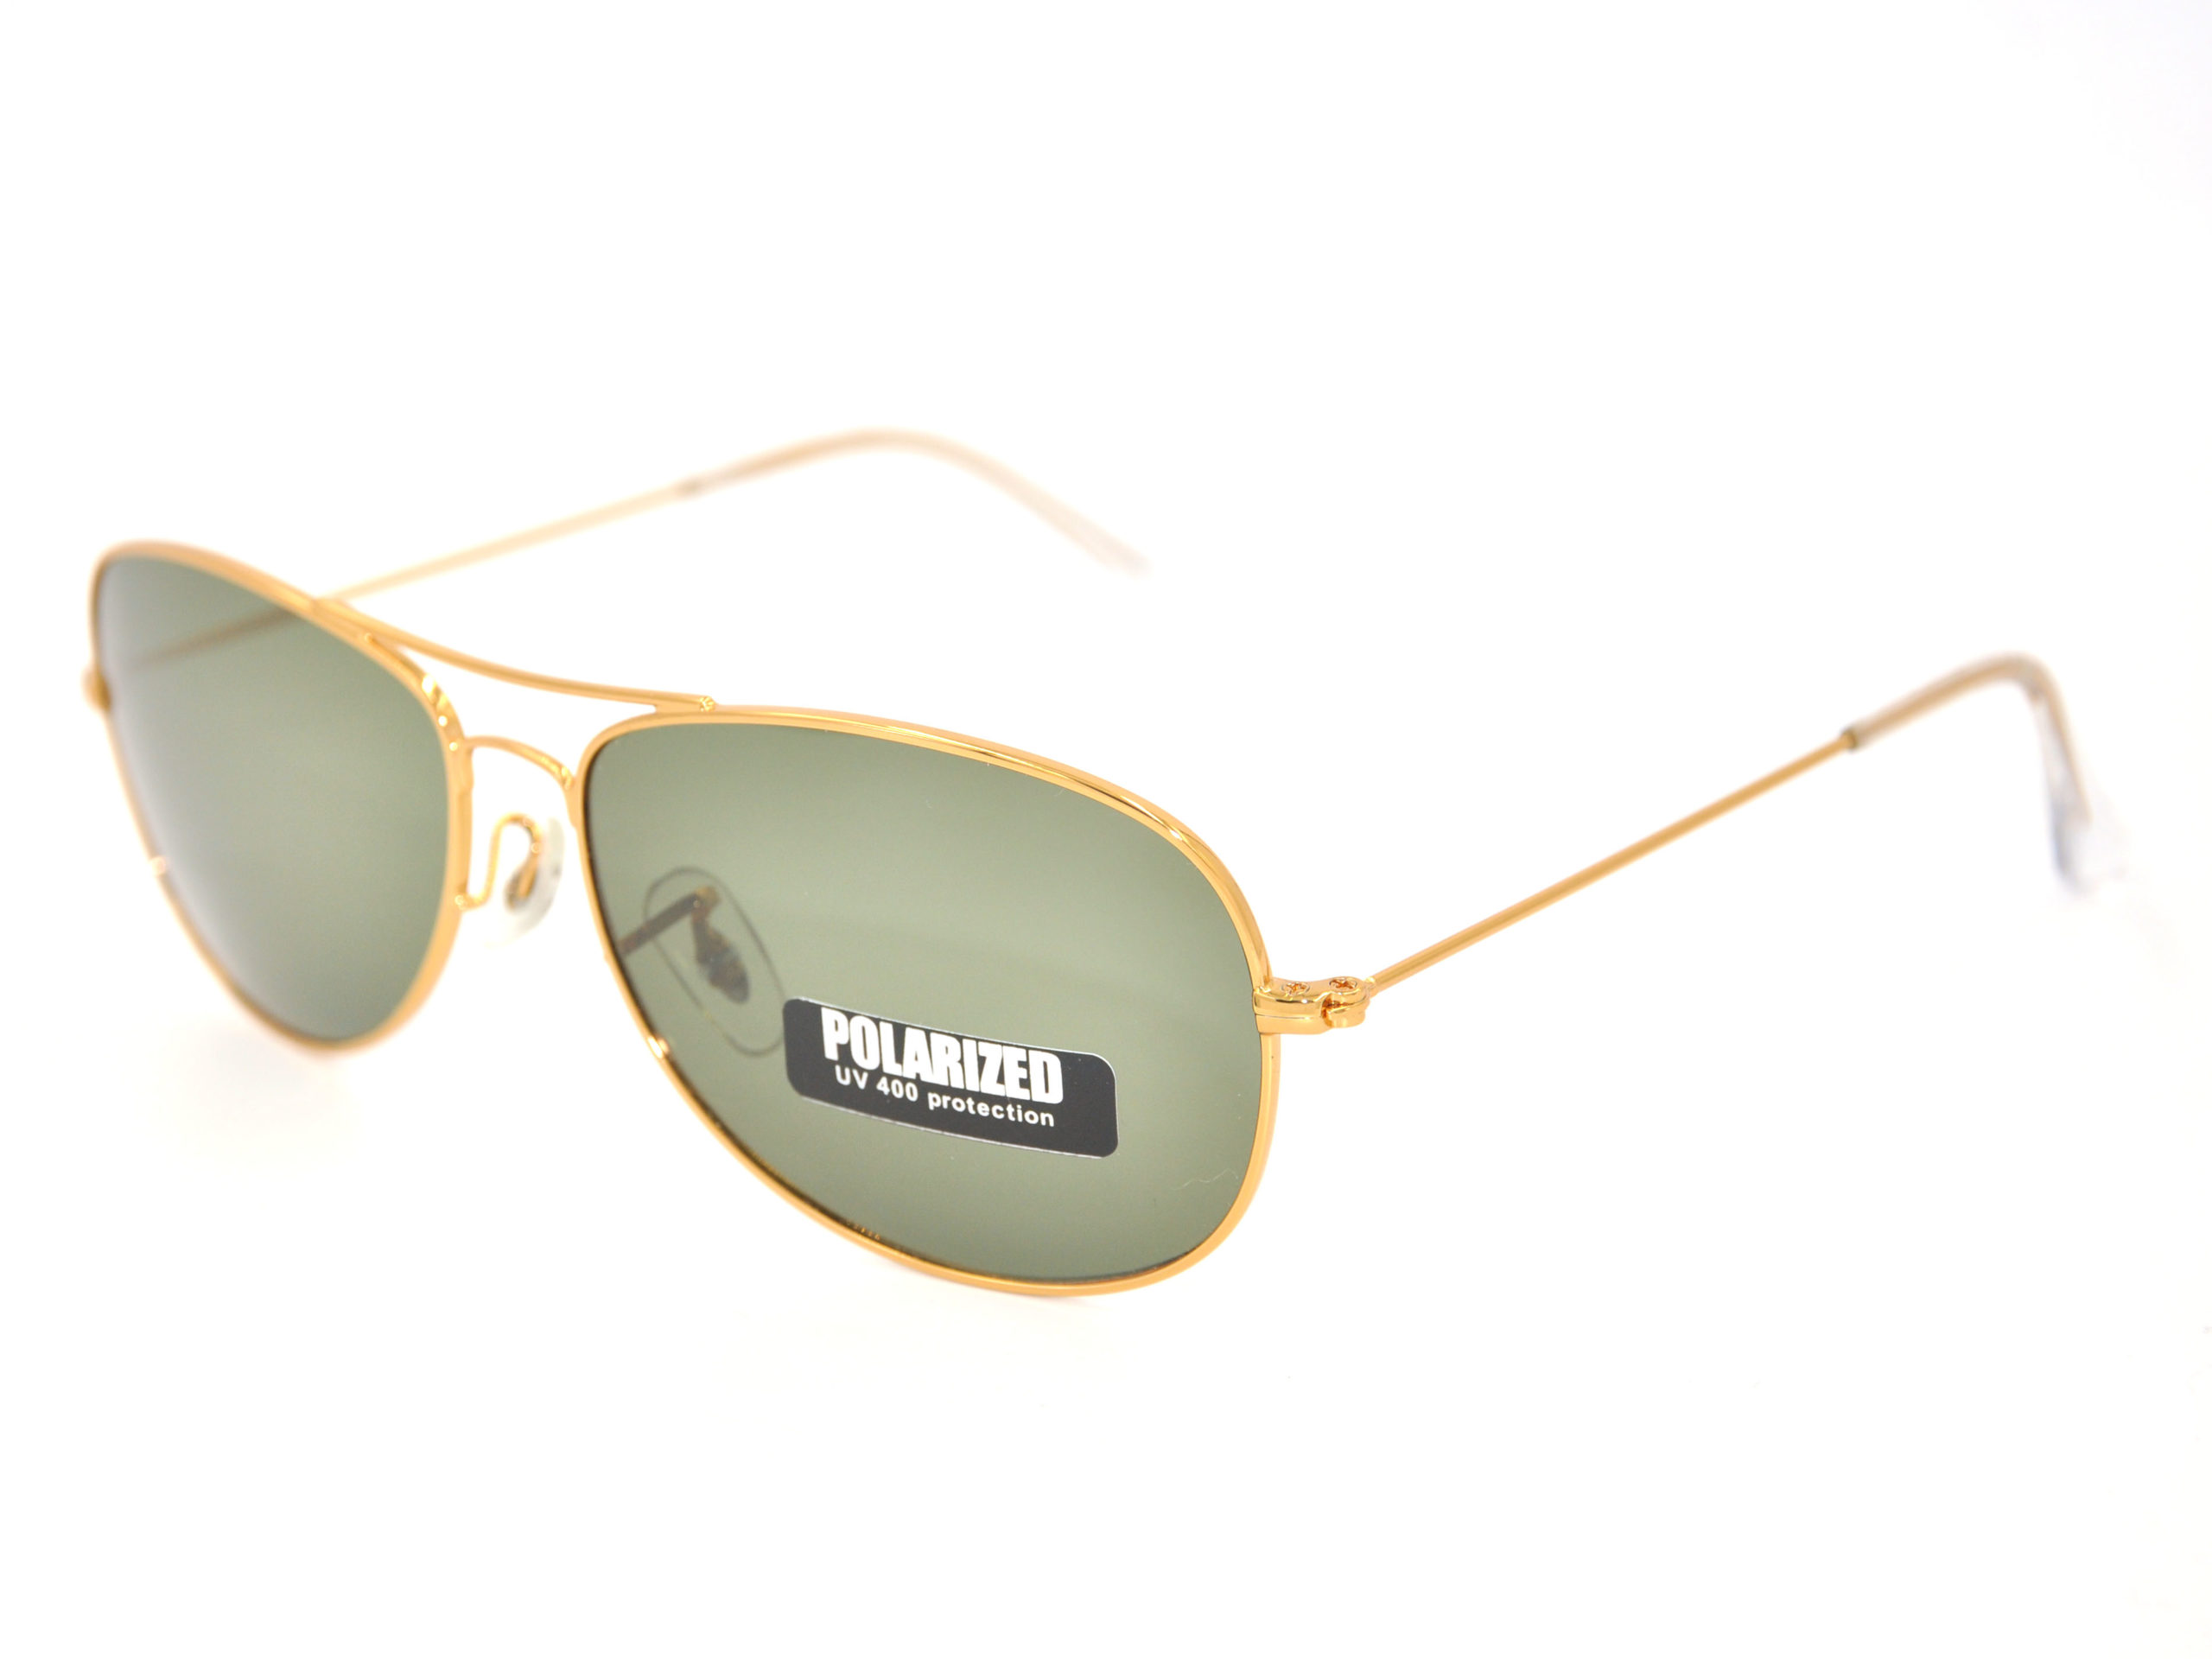 QUADRDANT 3362 C6 Sunglasses 2020